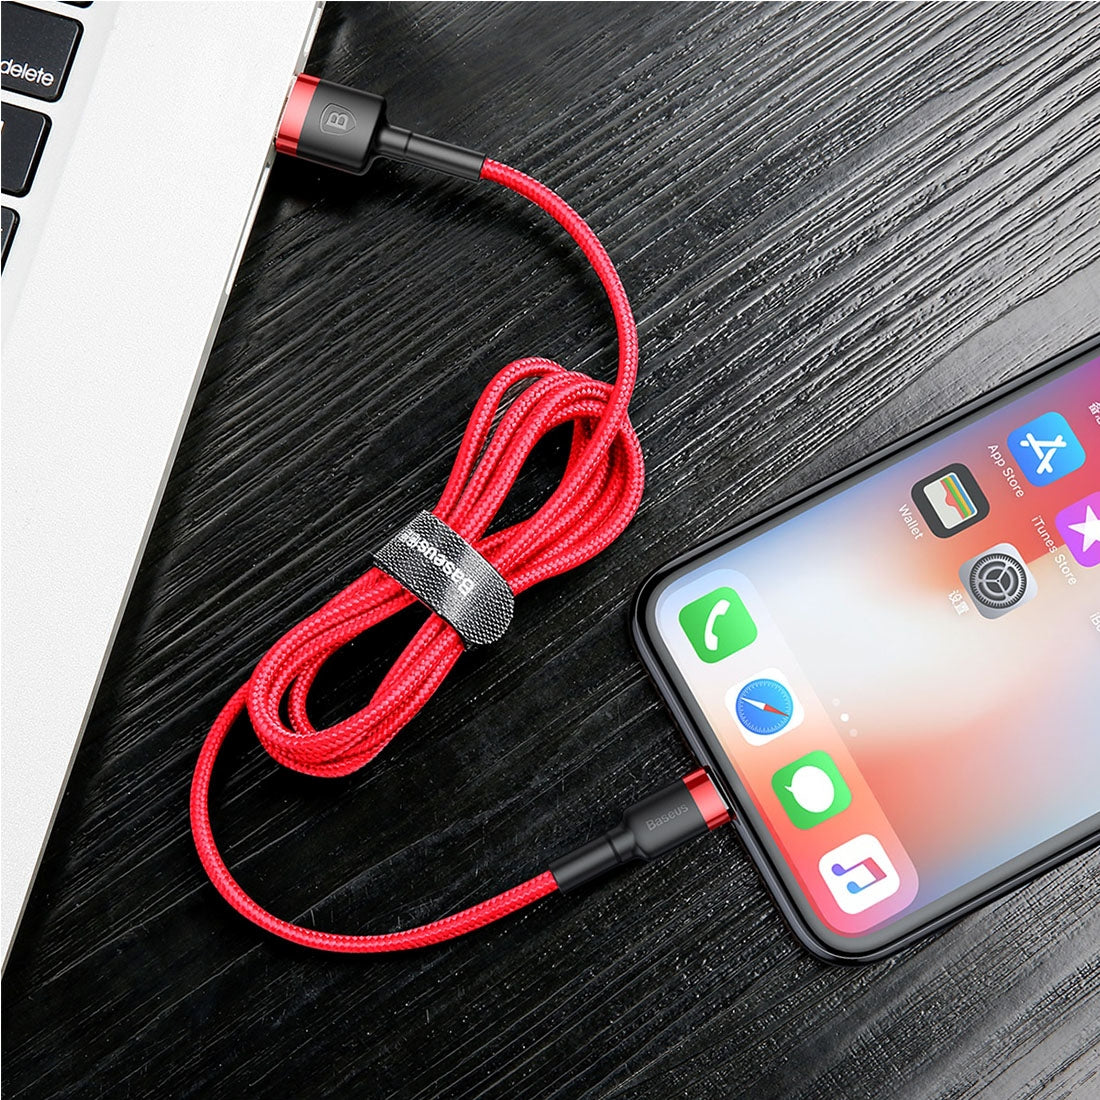 Baseus CALKLF-A09 2.4A 0.5m High Density Nylon Weave USB Cable for Apple 8 Pin, For iPhone XR / iPhone XS MAX / iPhone X & XS / iPhone 8 & 8 Plus / iPhone 7 & 7 Plus / iPhone 6 & 6s & 6 Plus & 6s Plus / iPad(Red)